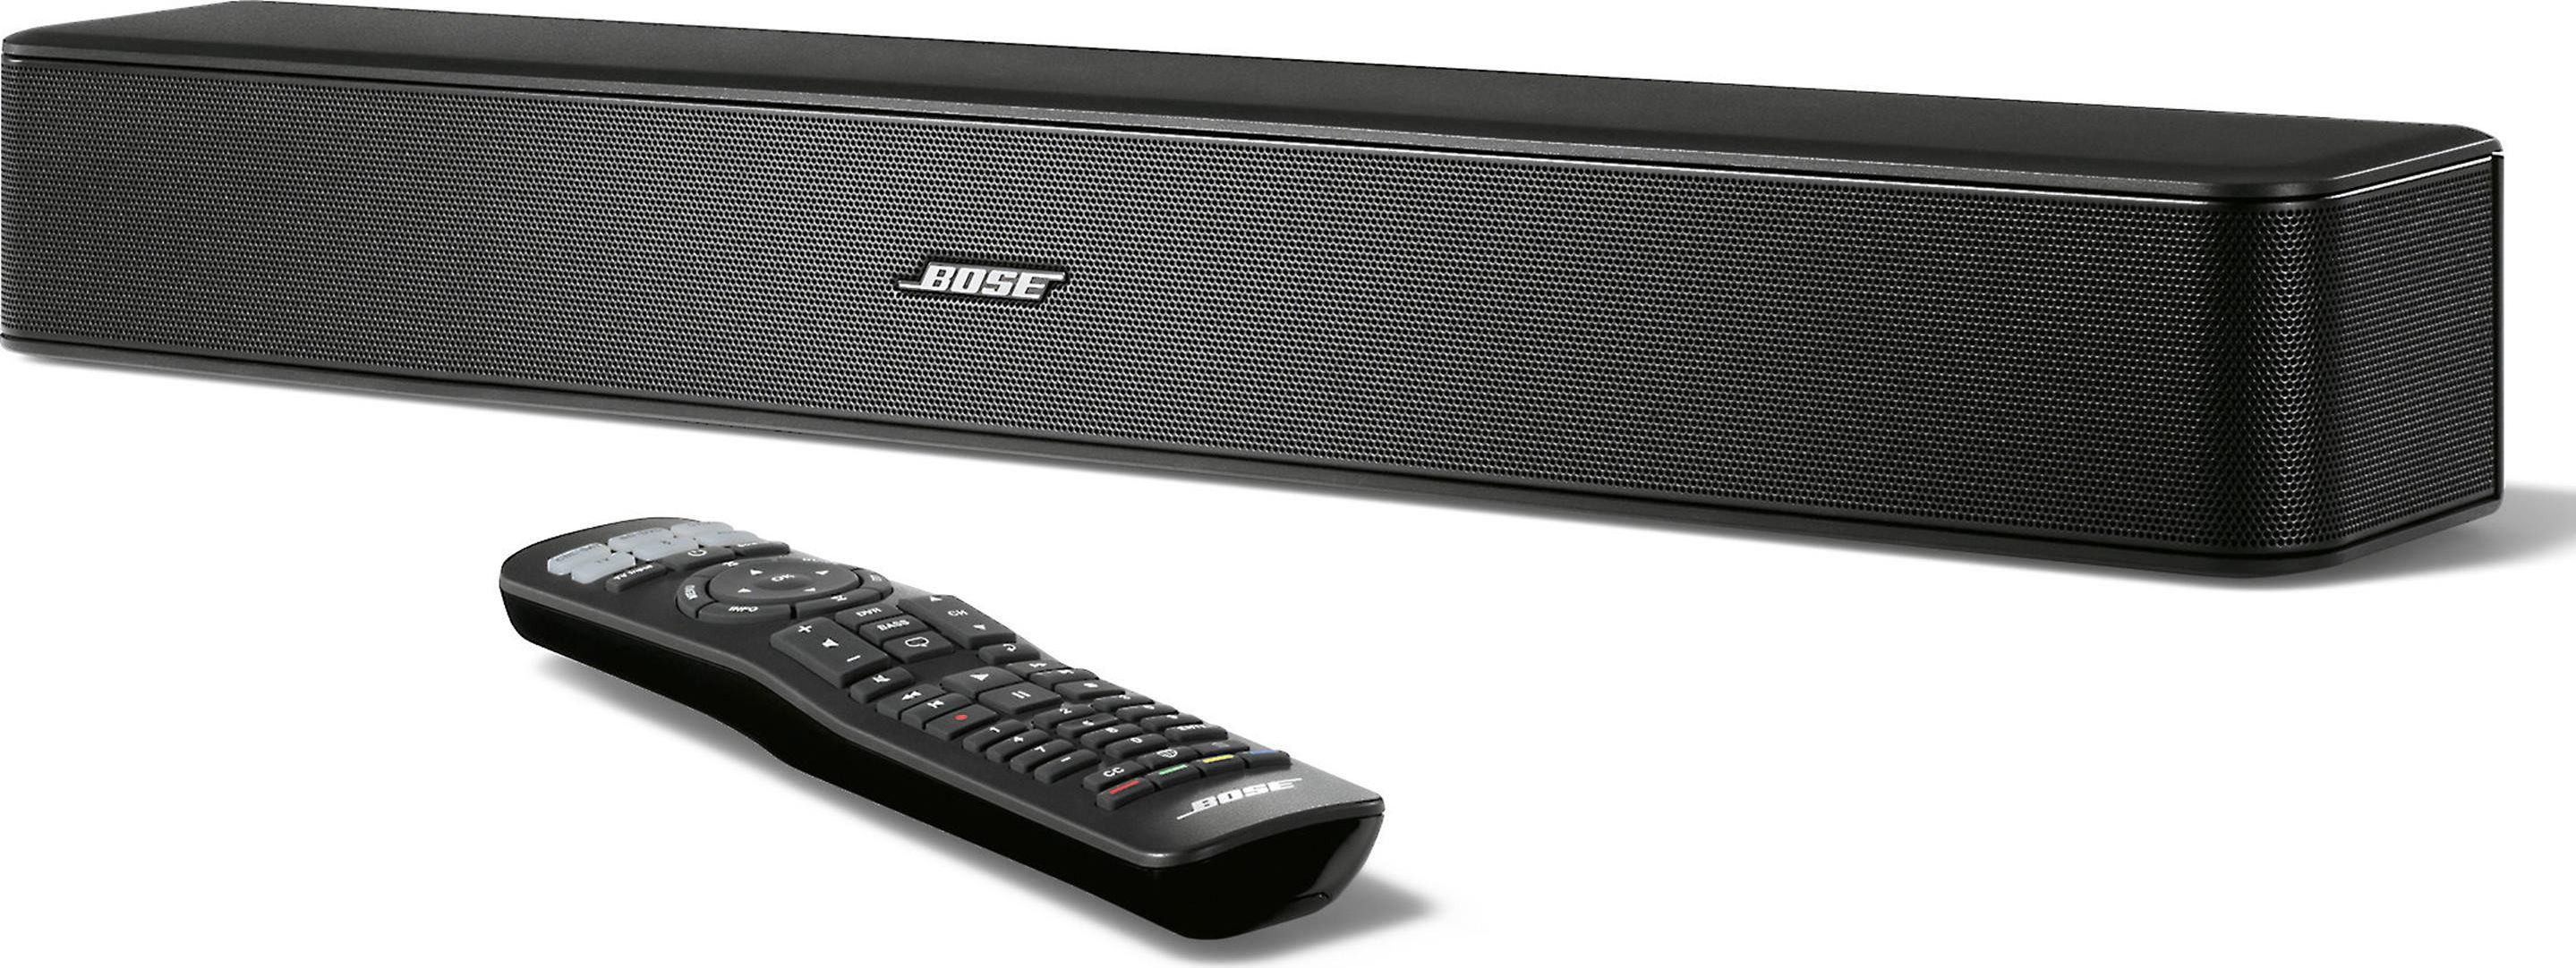 Bose® Solo 5 Black TV Sound System-732522-1110